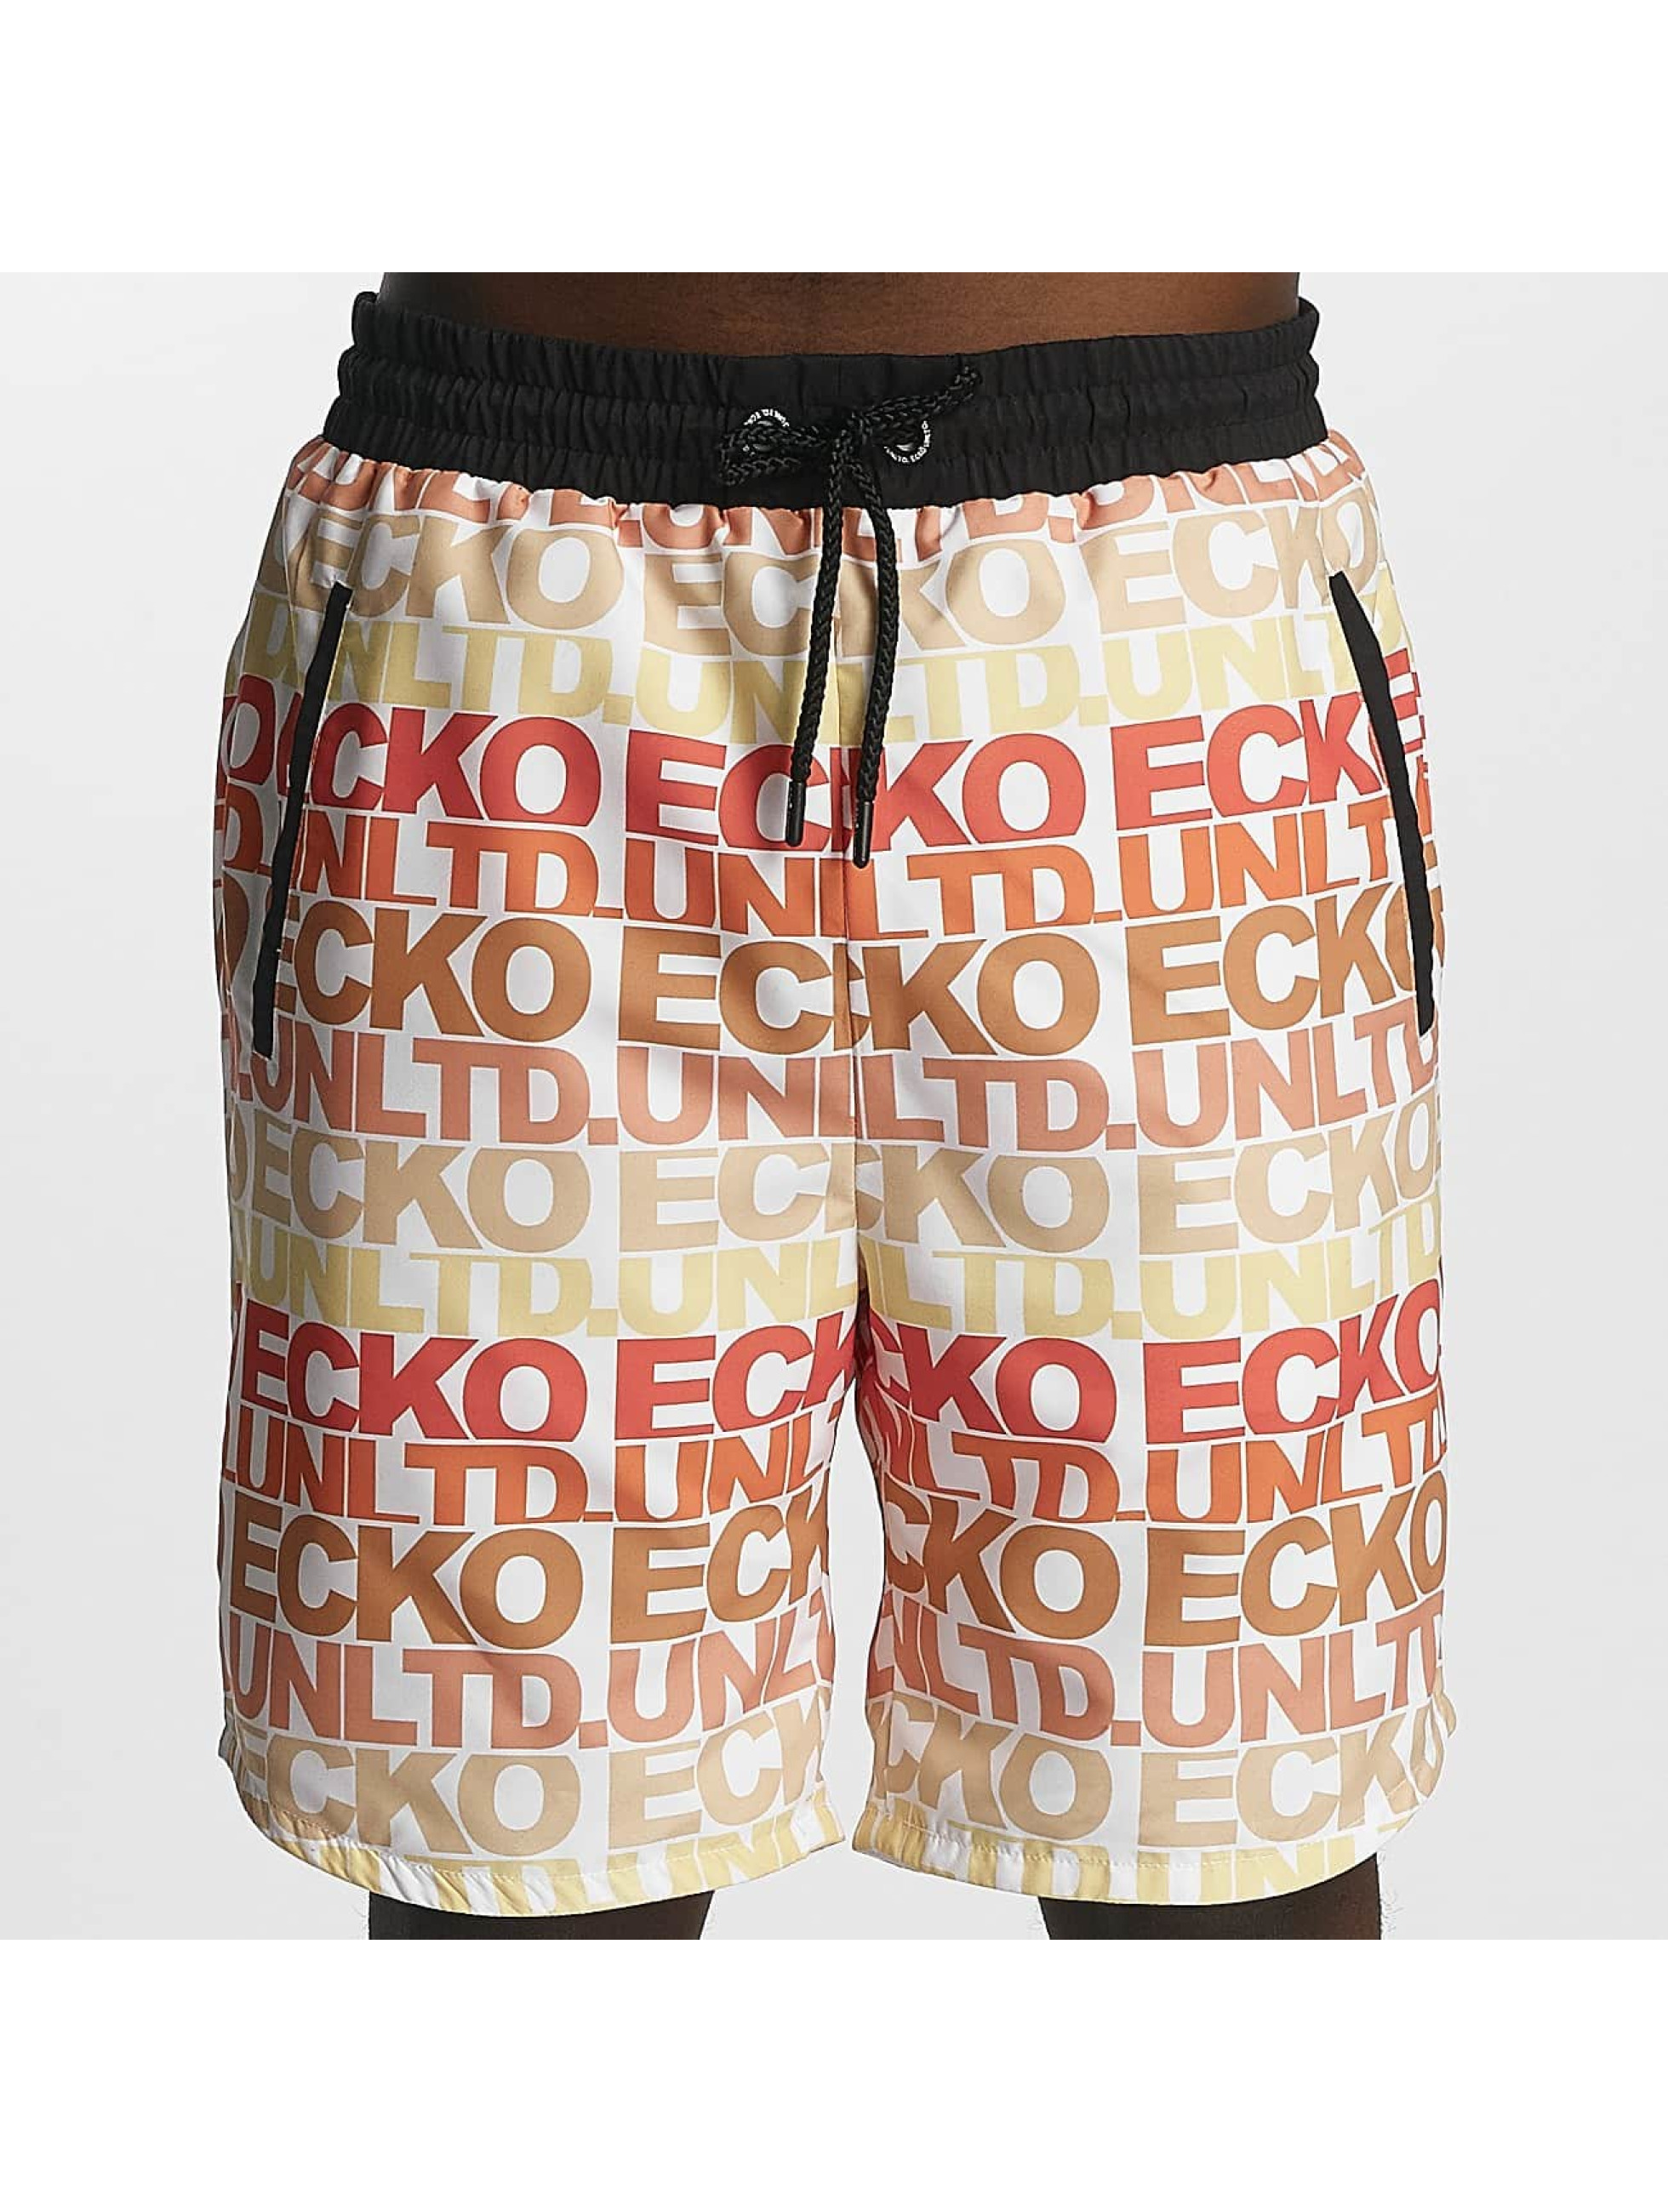 Ecko Unltd. / Short TroudÀrgent in orange S